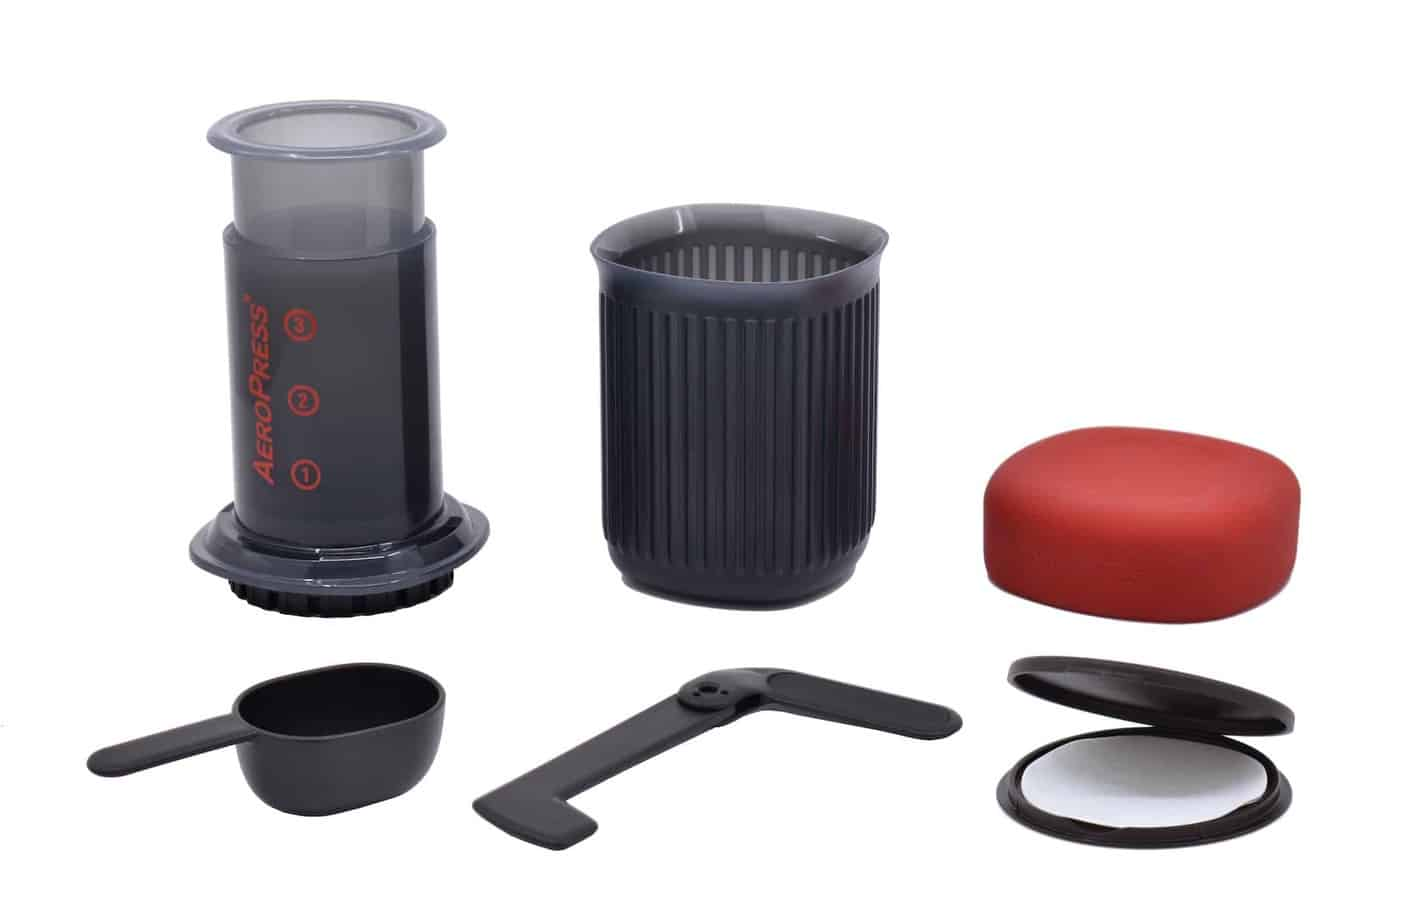 AeroPress Go with accessories